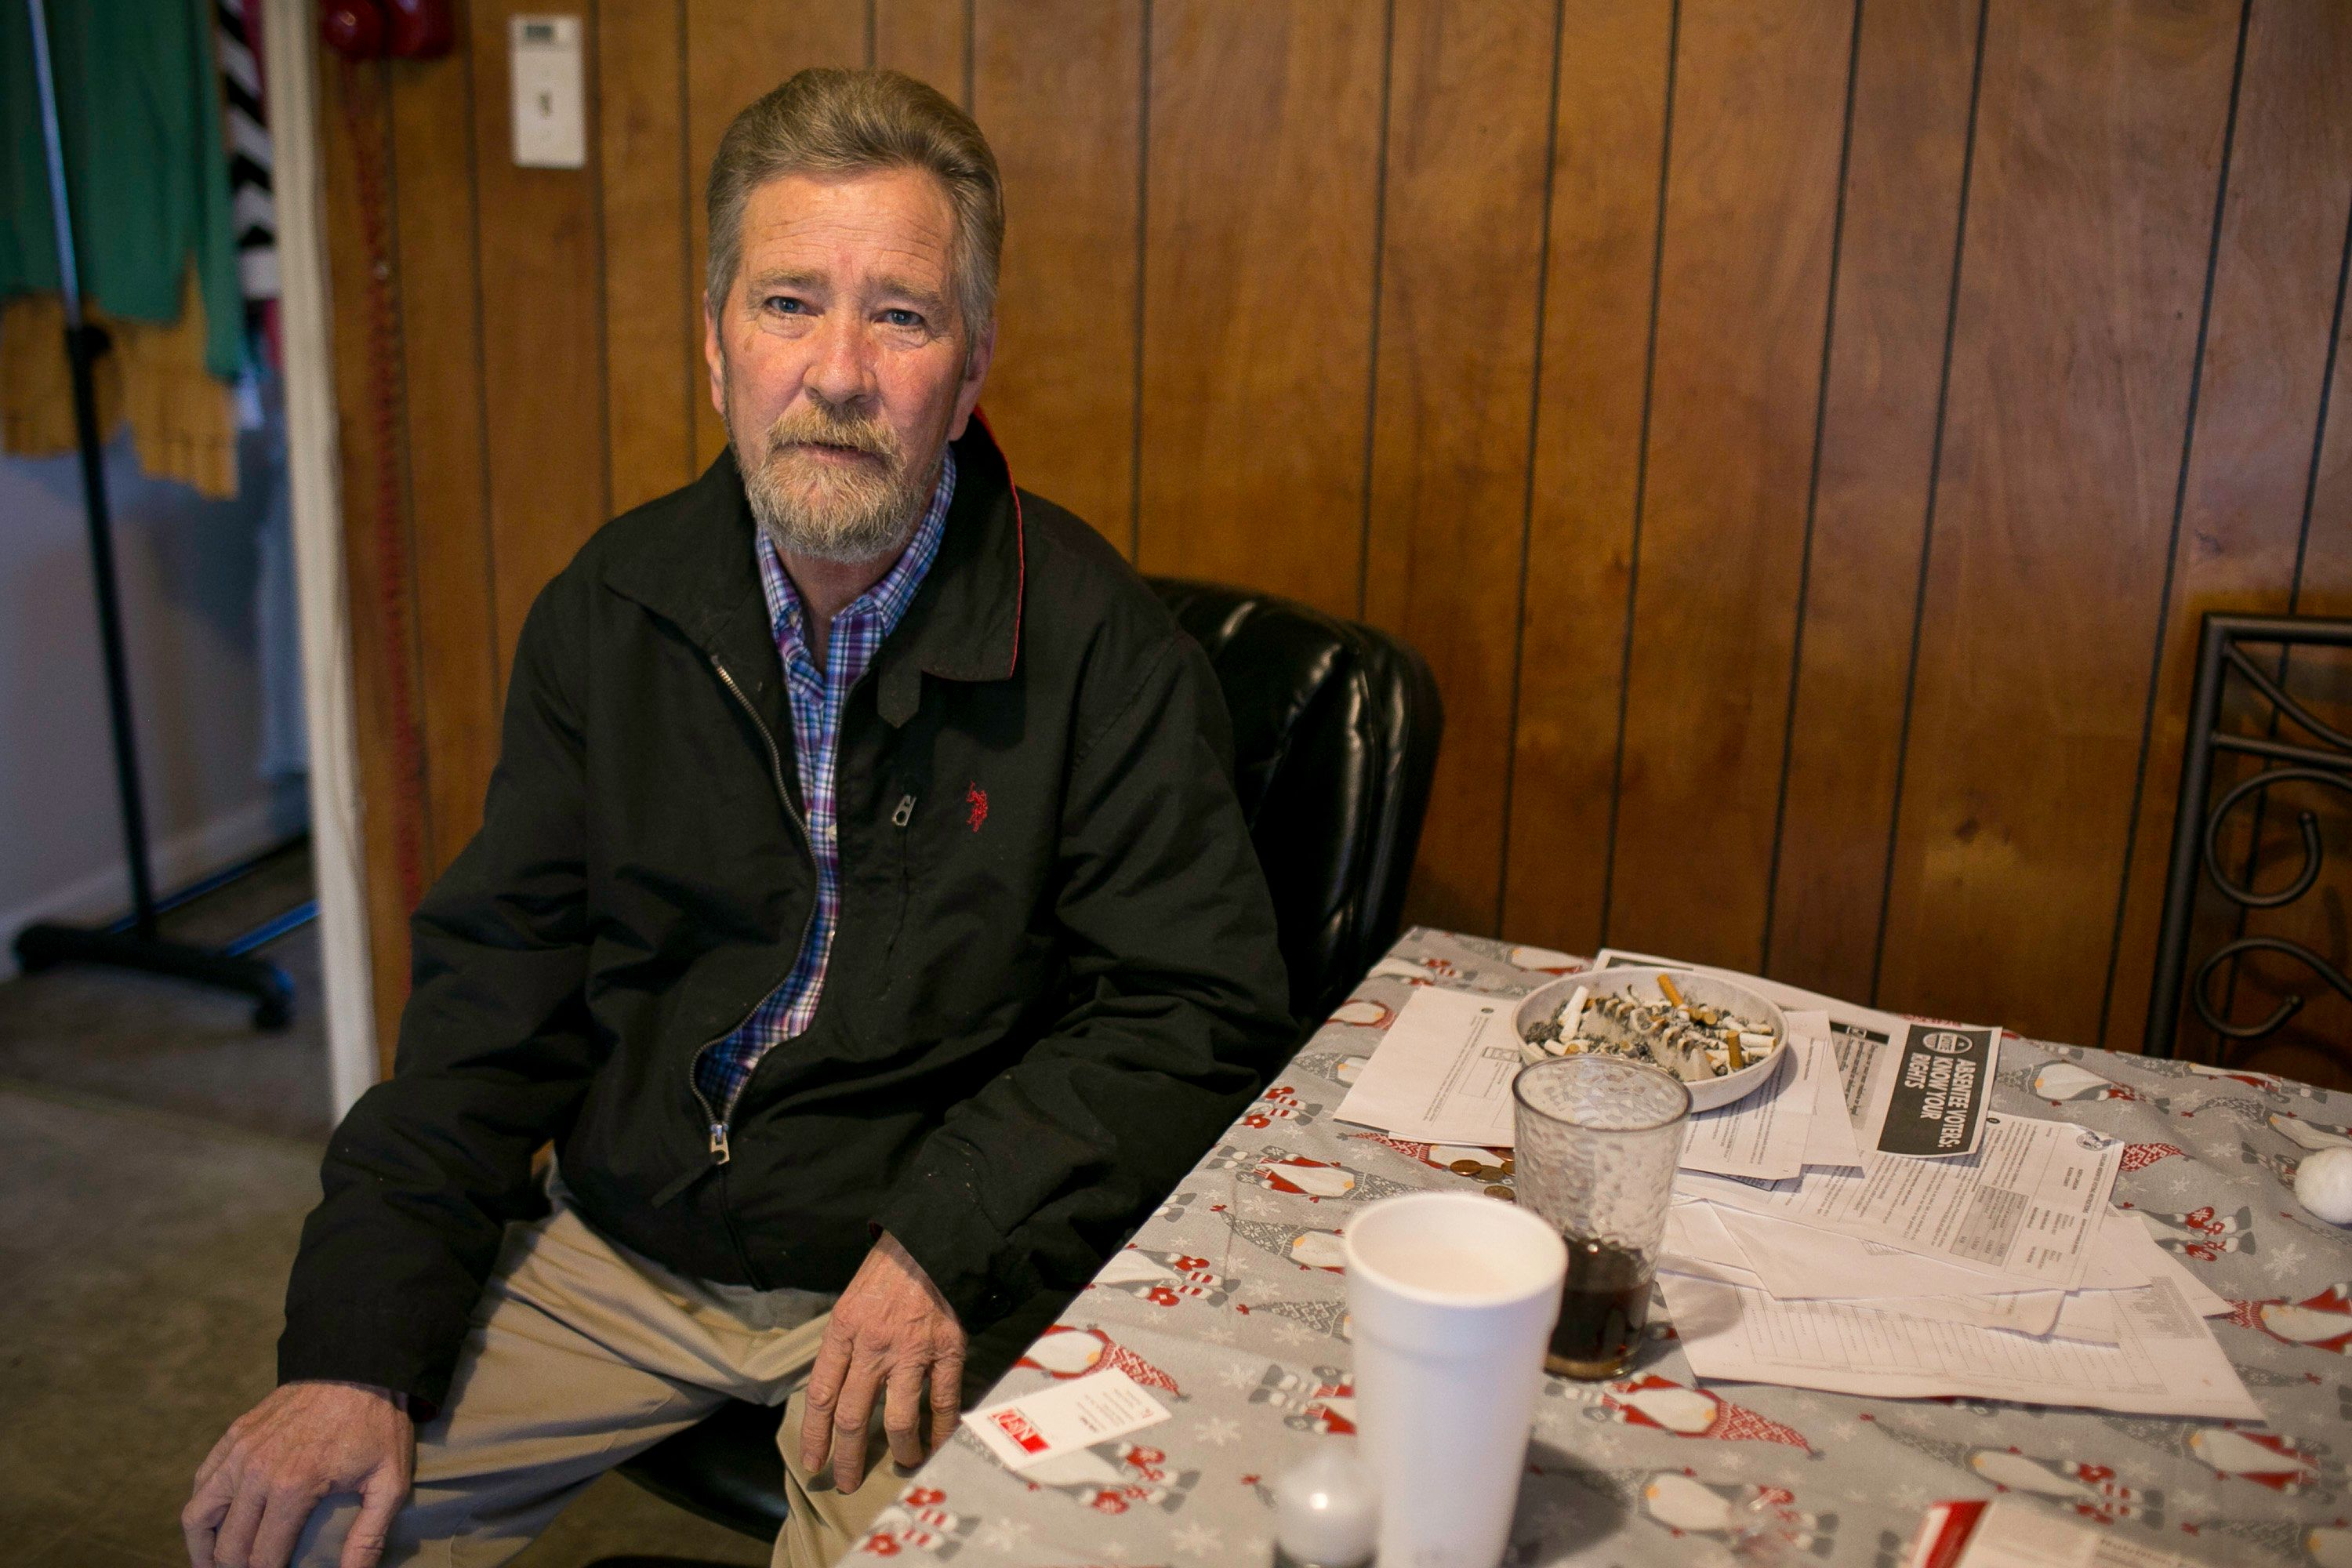 BLADENBORO, UNITED STATES - DECEMBER 5: Leslie McCrae Dowless sits in his kitchen in Bladenboro, NC. Dowless who worked provide get-out-the-vote services for Republican candidate Mark Harris in North Carolinas 9th Congressional District in Bladen County, NC. The North Carolina State Board of Elections and Ethics Enforcement decided not to certify the 9th Congressional District election results, which includes Bladen County, between Harris and Democrat Dan McCready due to possible voter fraud involving absentee ballots. A controversy Leslie McCrae Dowless is at the center of. (Photo by Justin Kase Conder for The Washington Post via Getty Images)